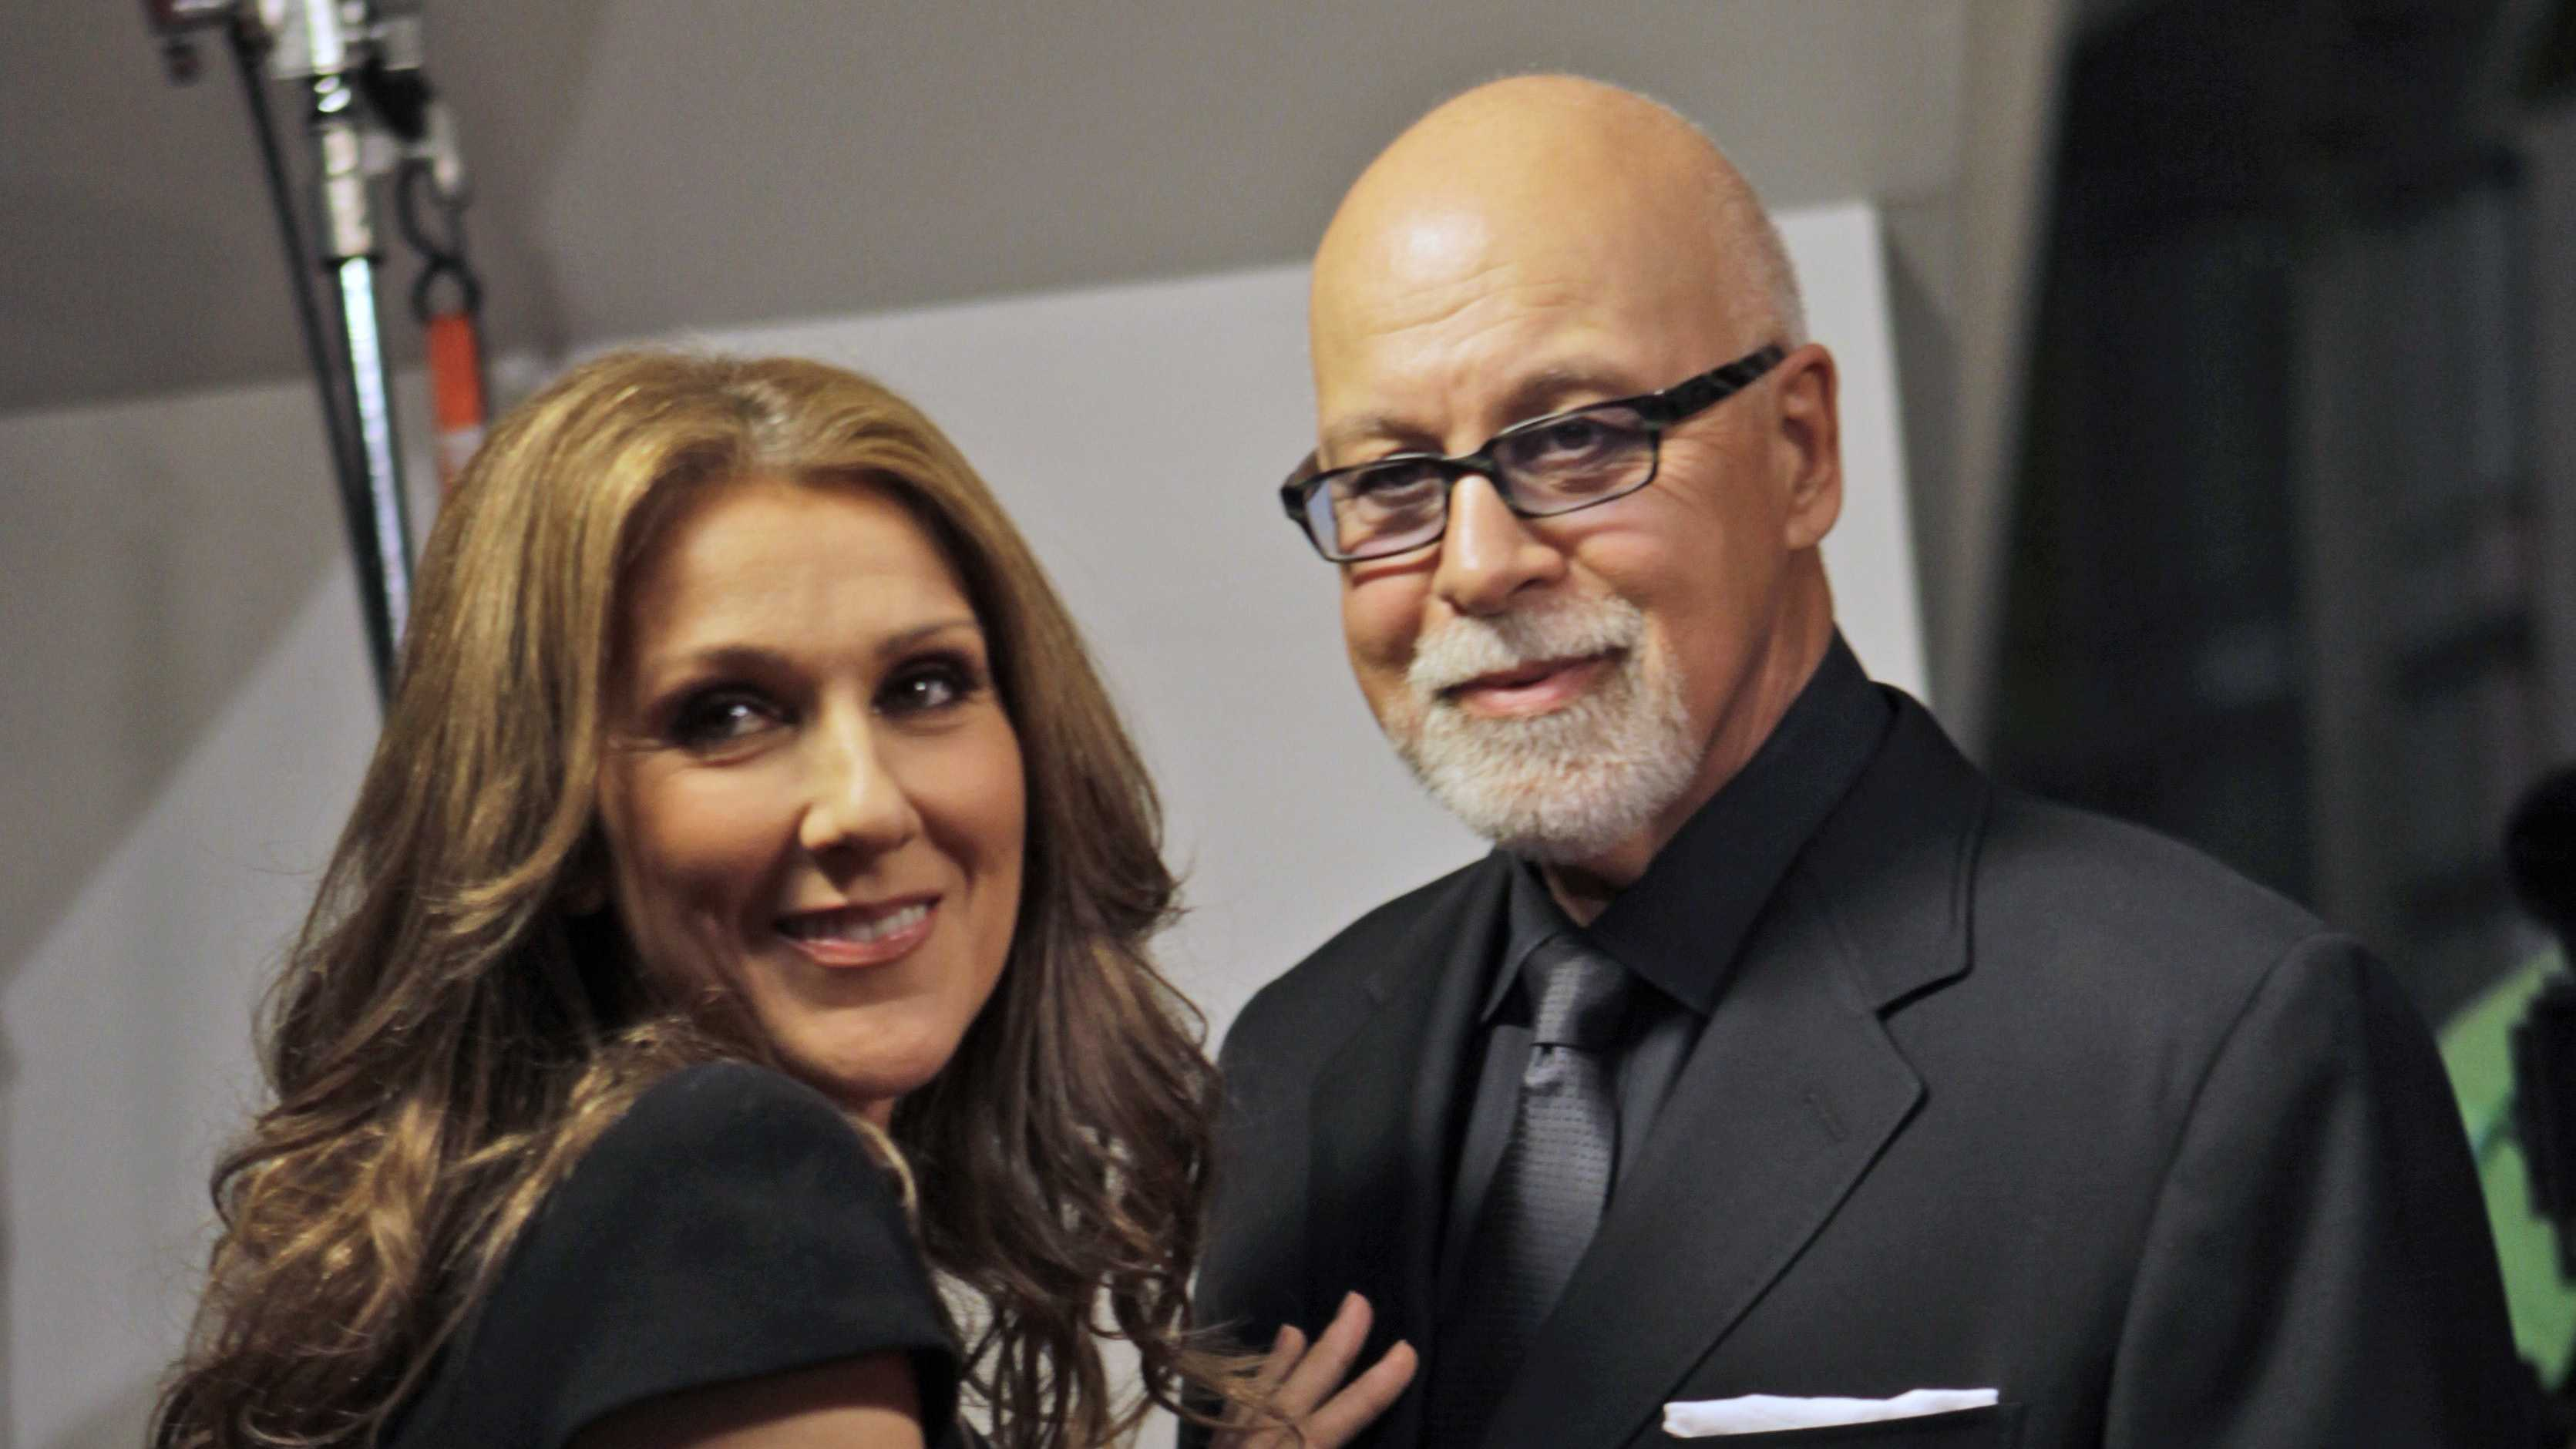 Celine Dion, left, poses with her husband Rene Angelil, right.